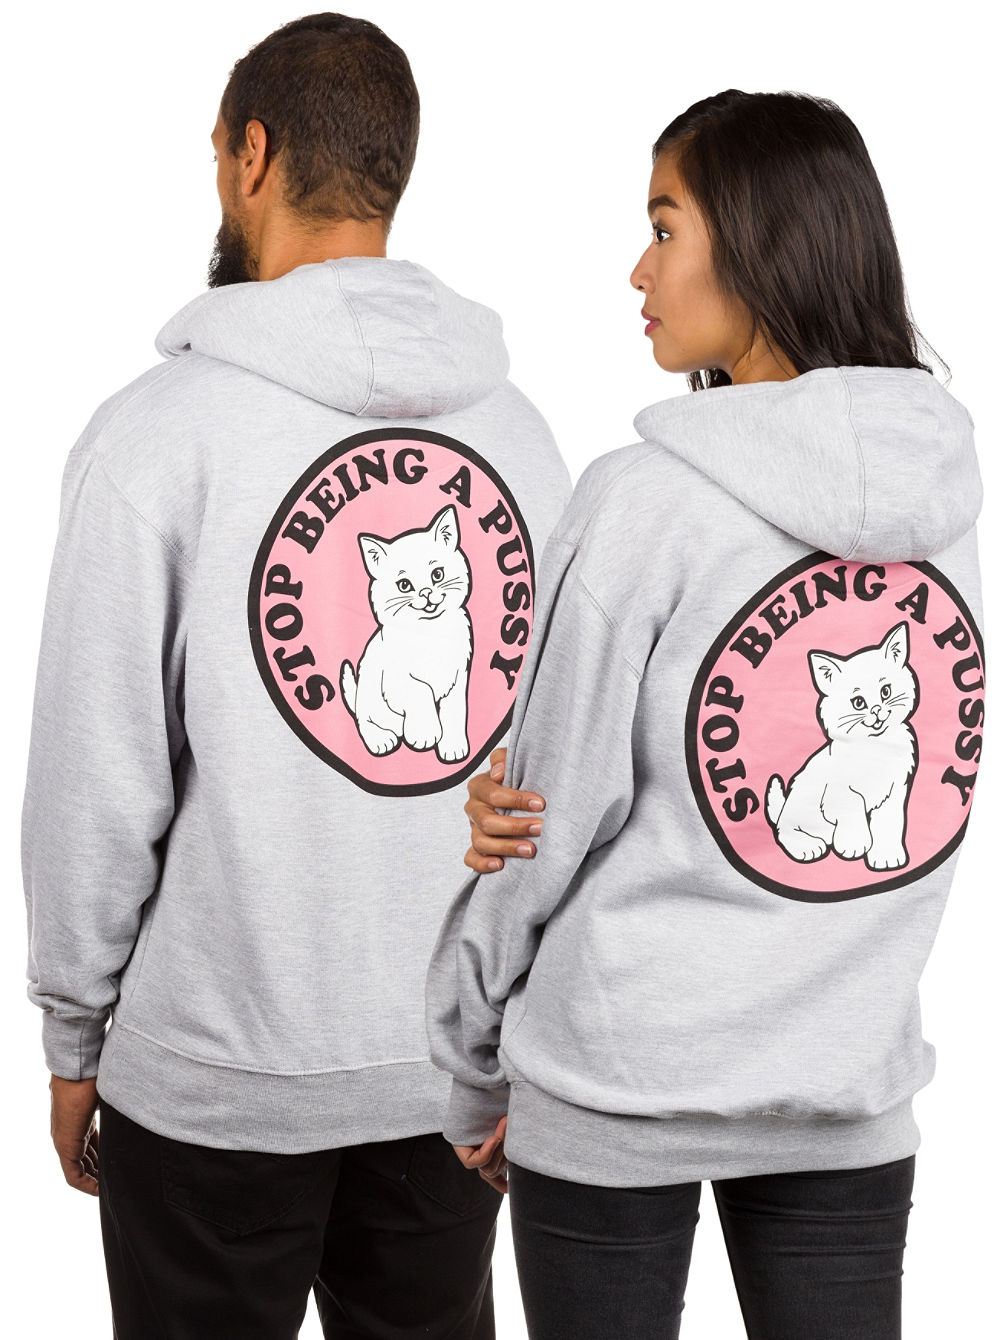 Stop Being a Pussy Sudadera con Capucha